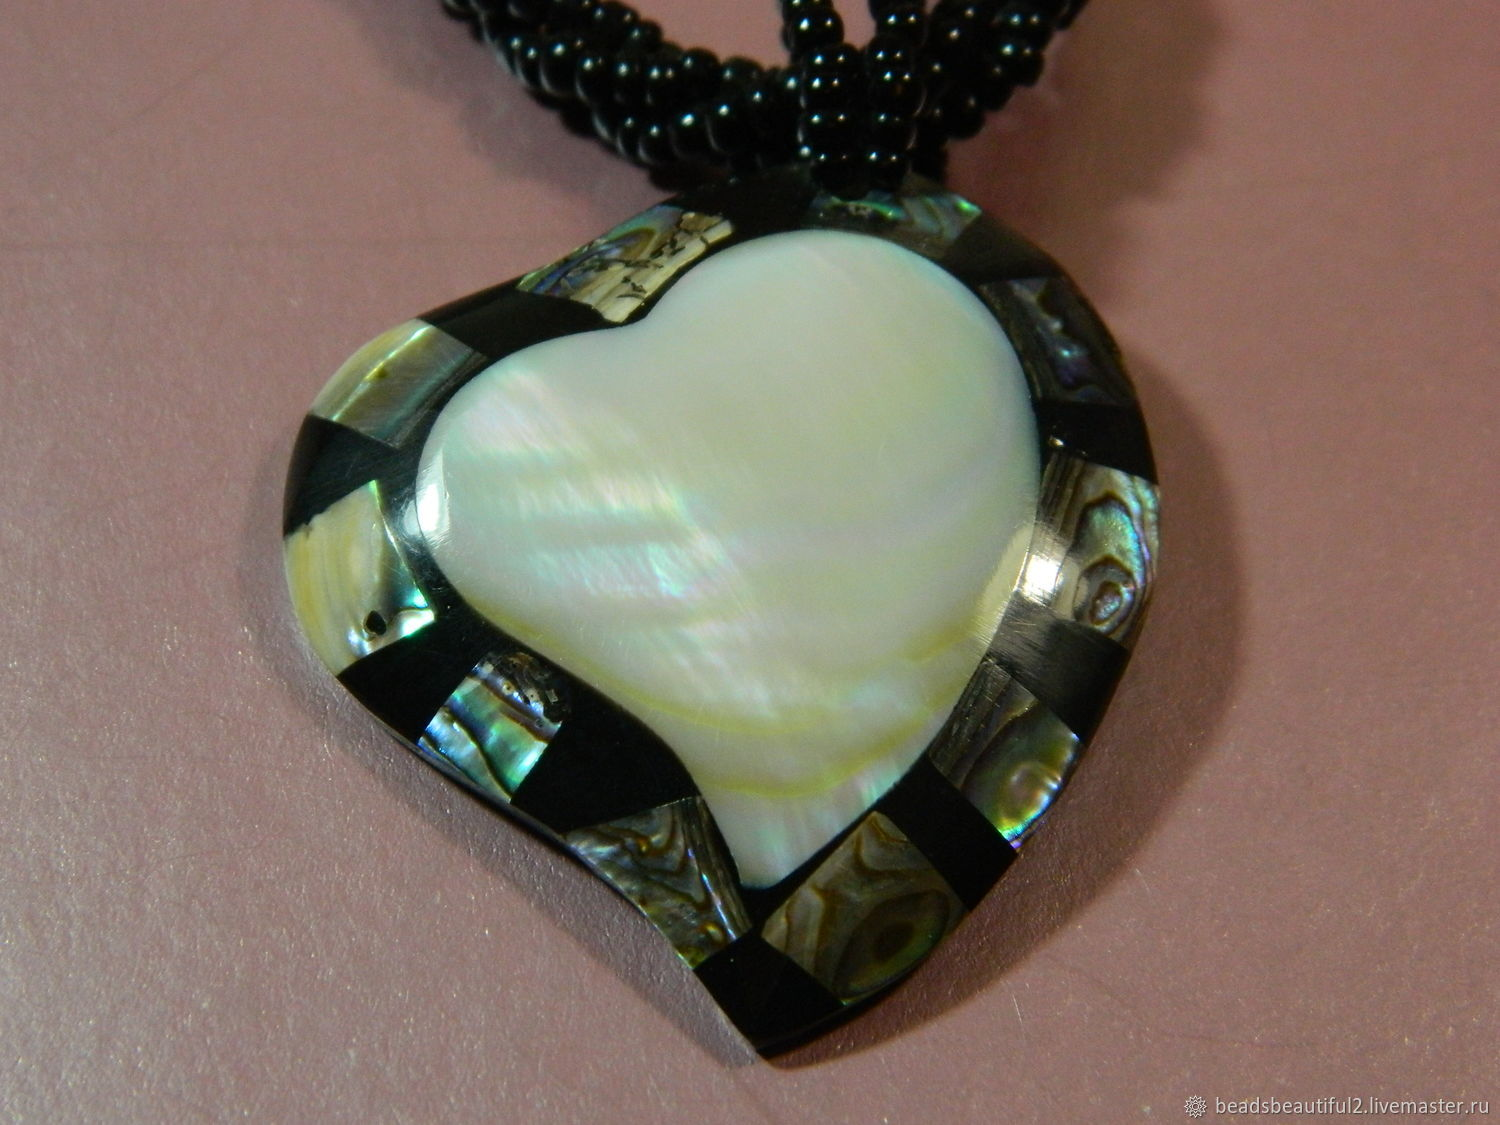 Pendant made of mother of pearl 50h44 mm pcs, Pendants, Saratov,  Фото №1